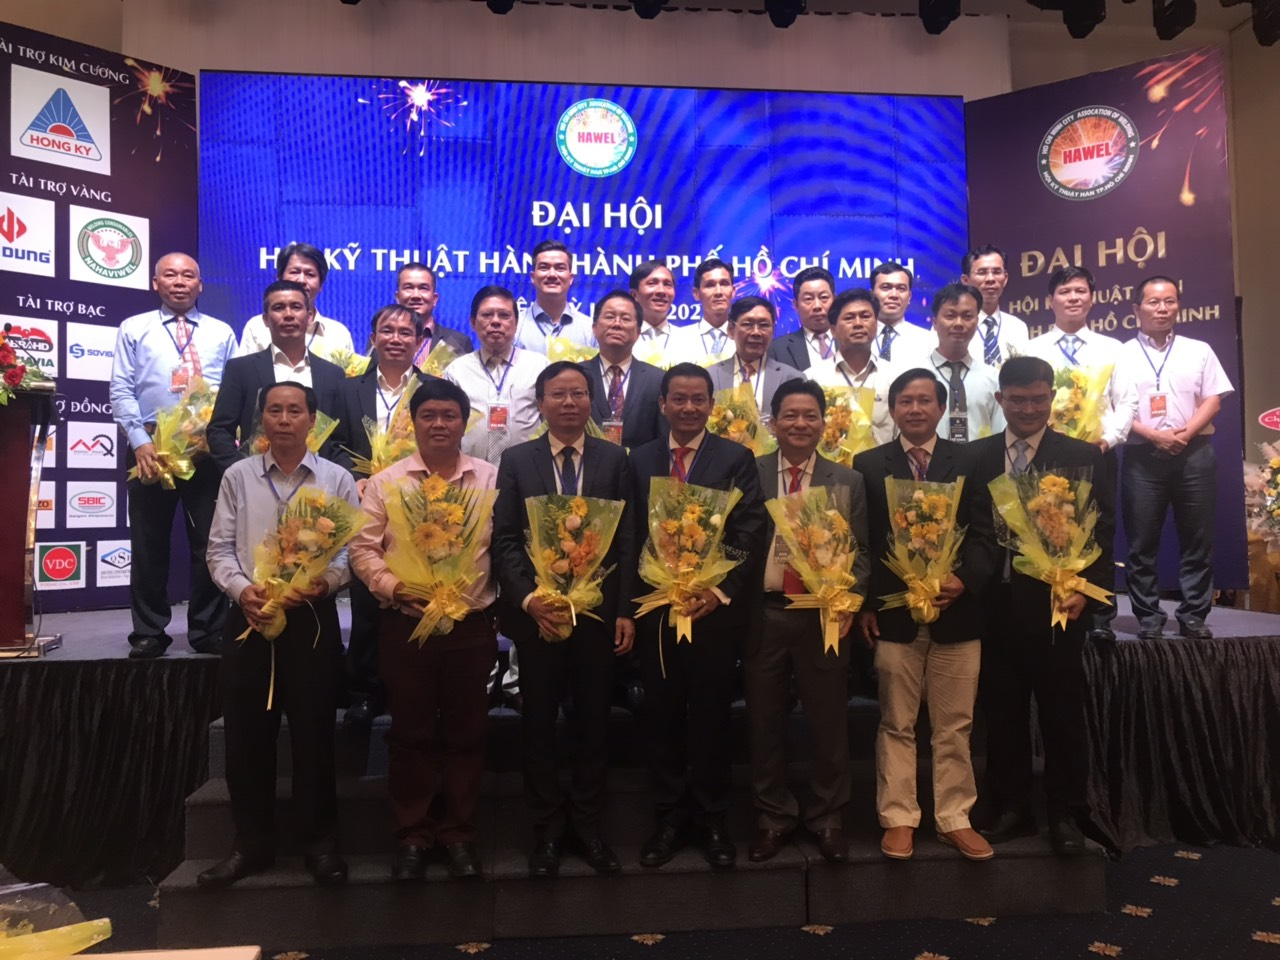 WELDING TECHNOLOGY CONFERENCE HO CHI MINH CITY THE FIRST TERM (2020 -2025)